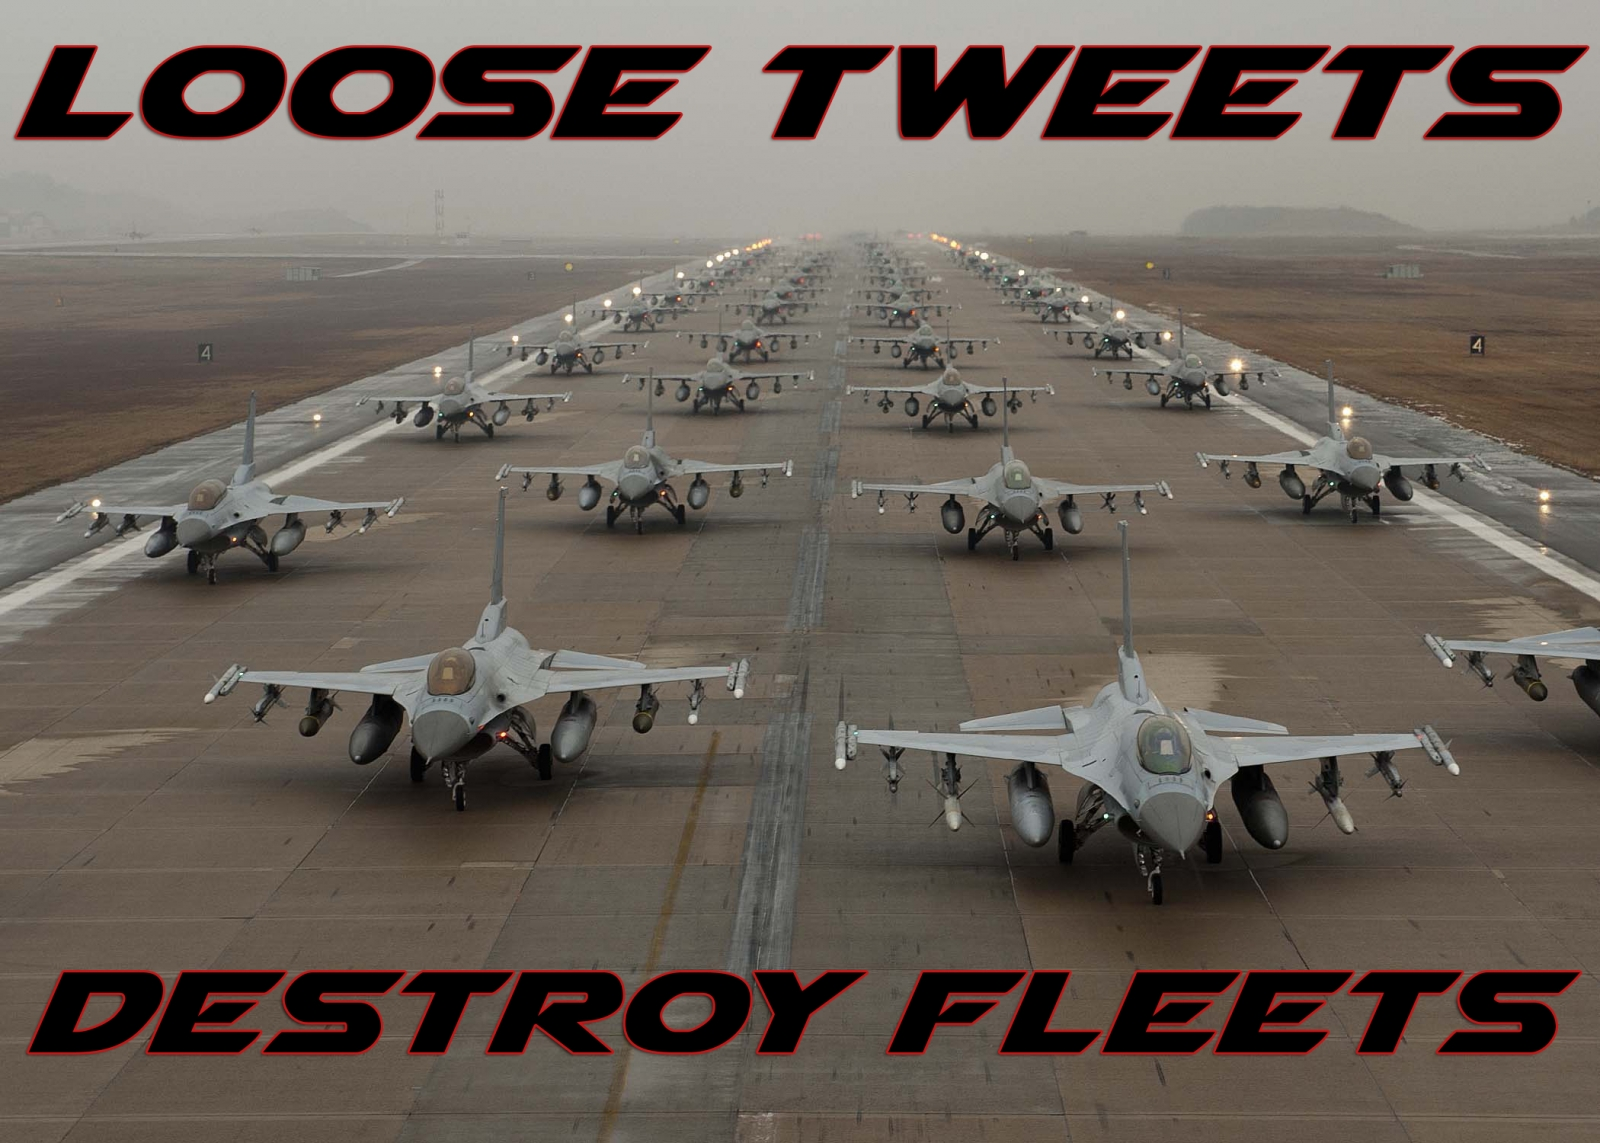 Loose Tweets Destroy Fleets Air Force campaign